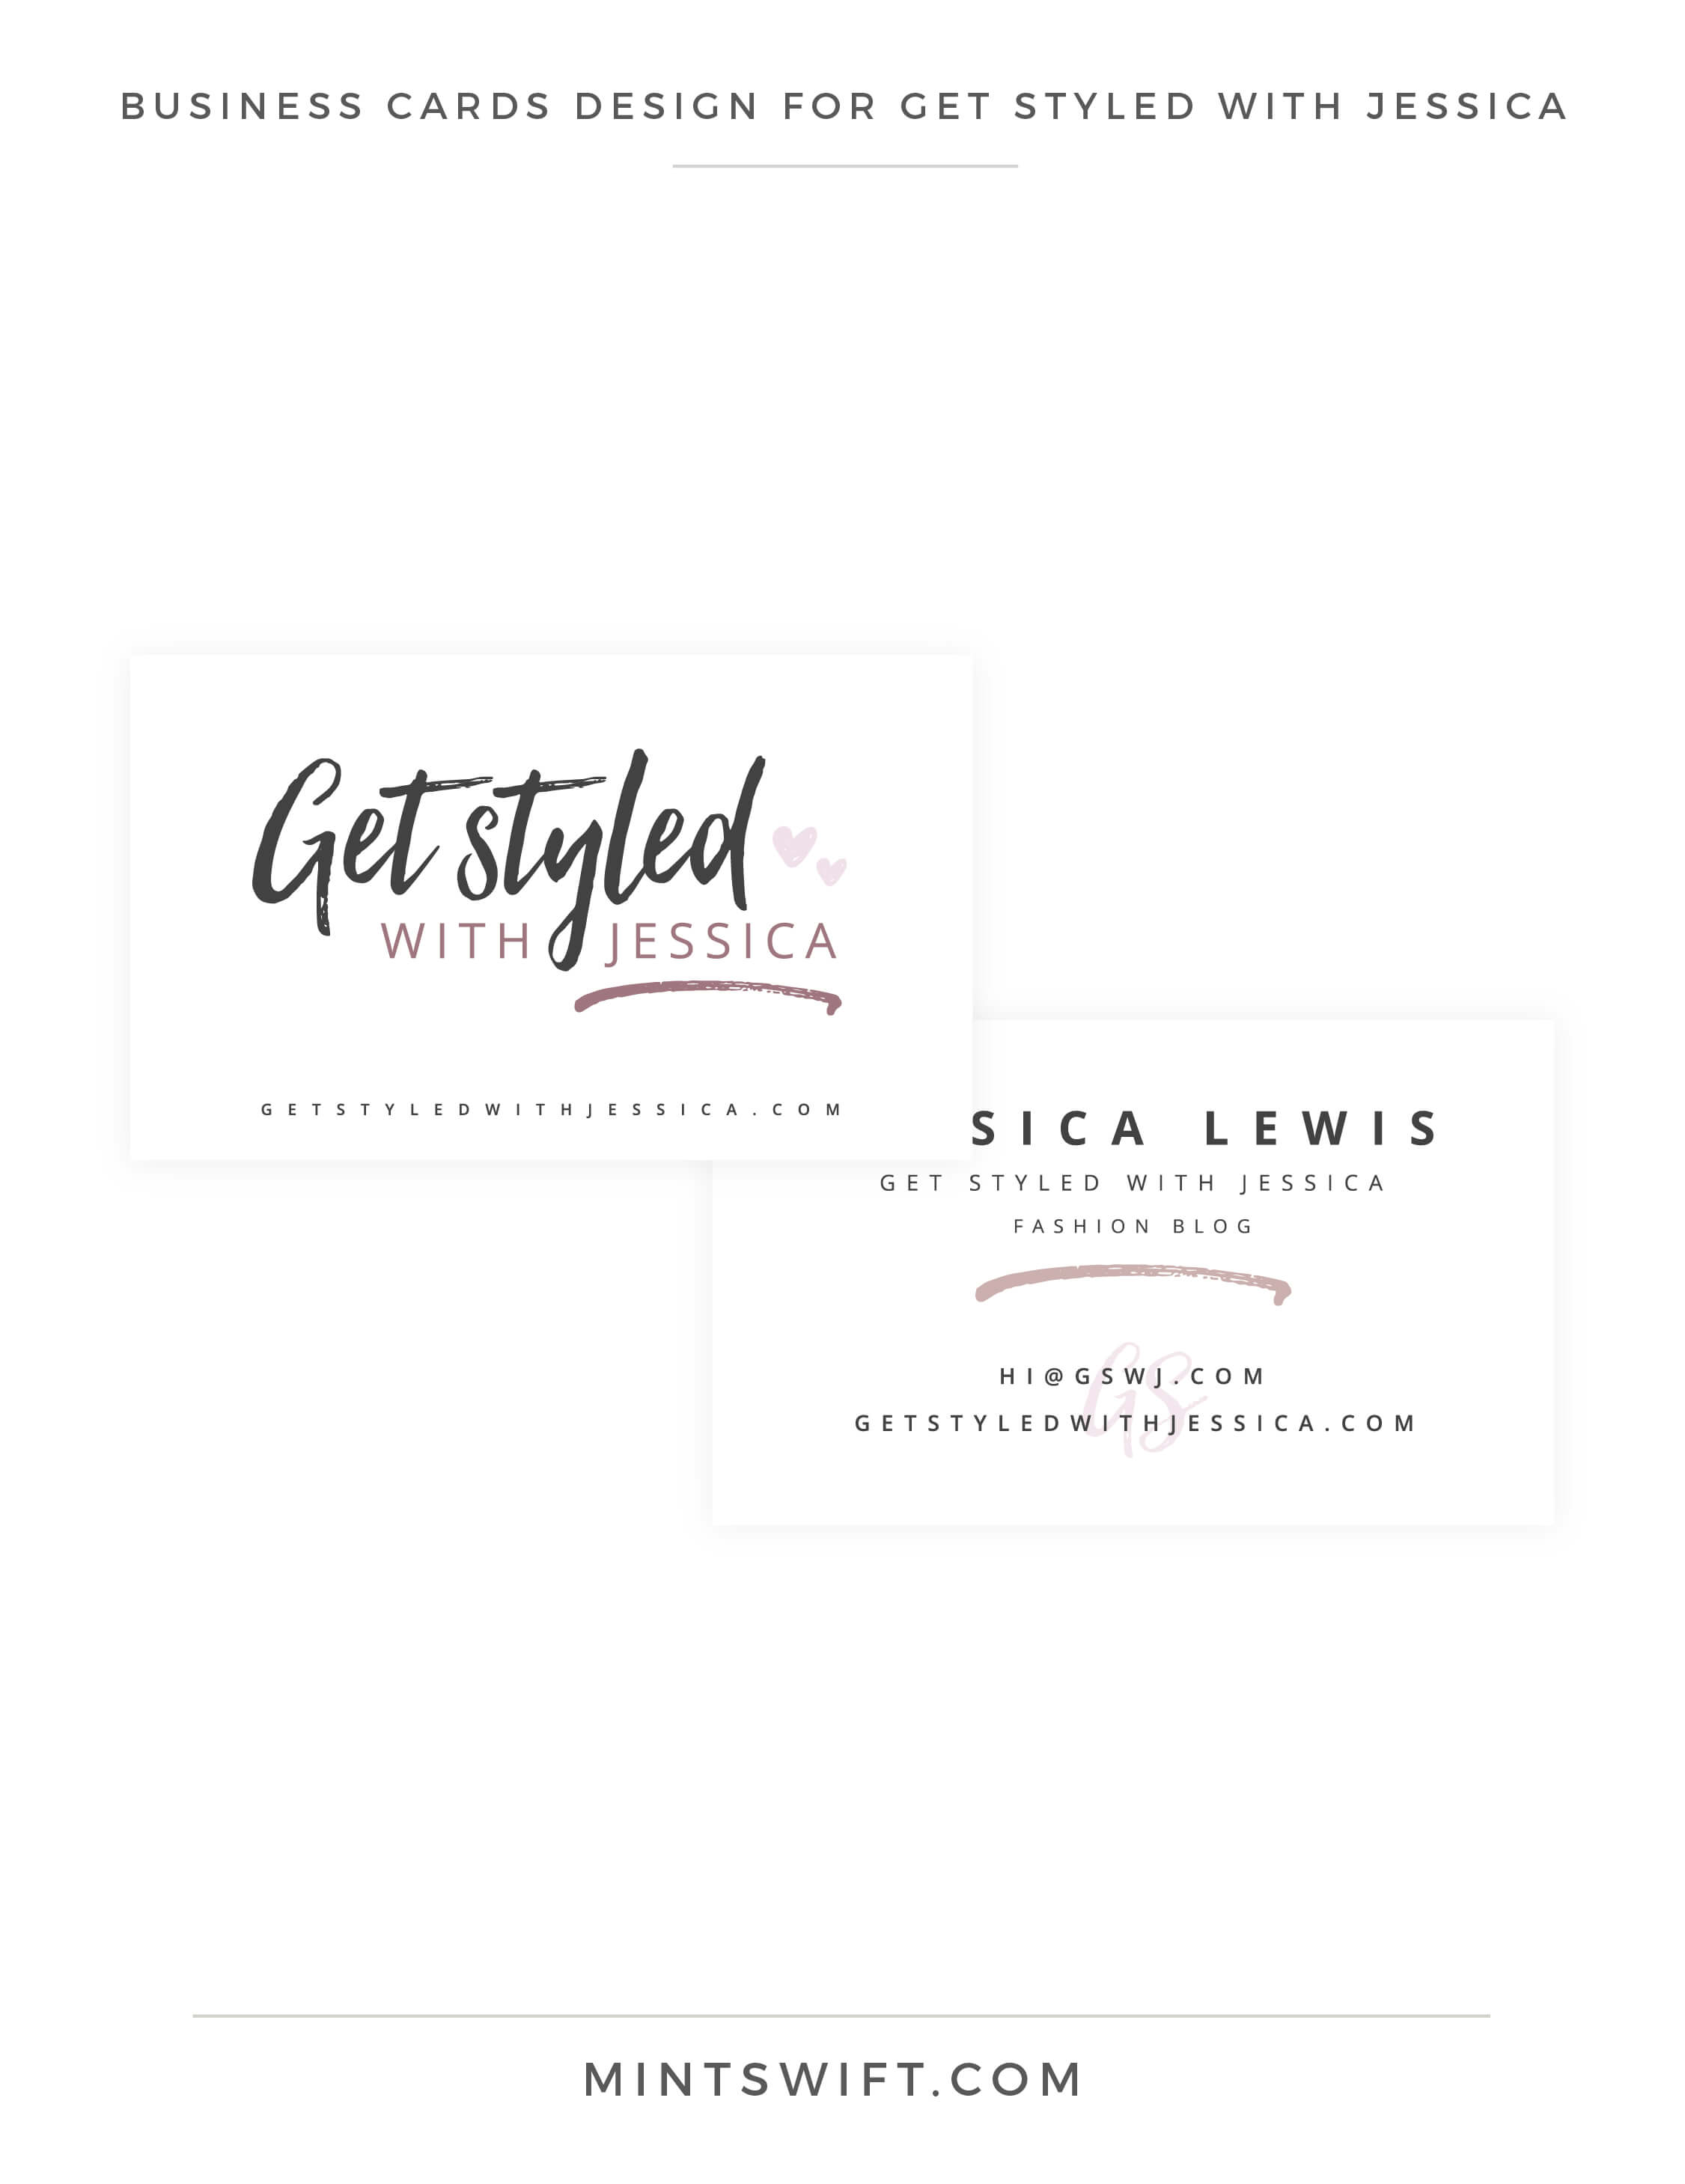 Get Styled with Jessica - Business Cards Design - Brand Design Package - MintSwift